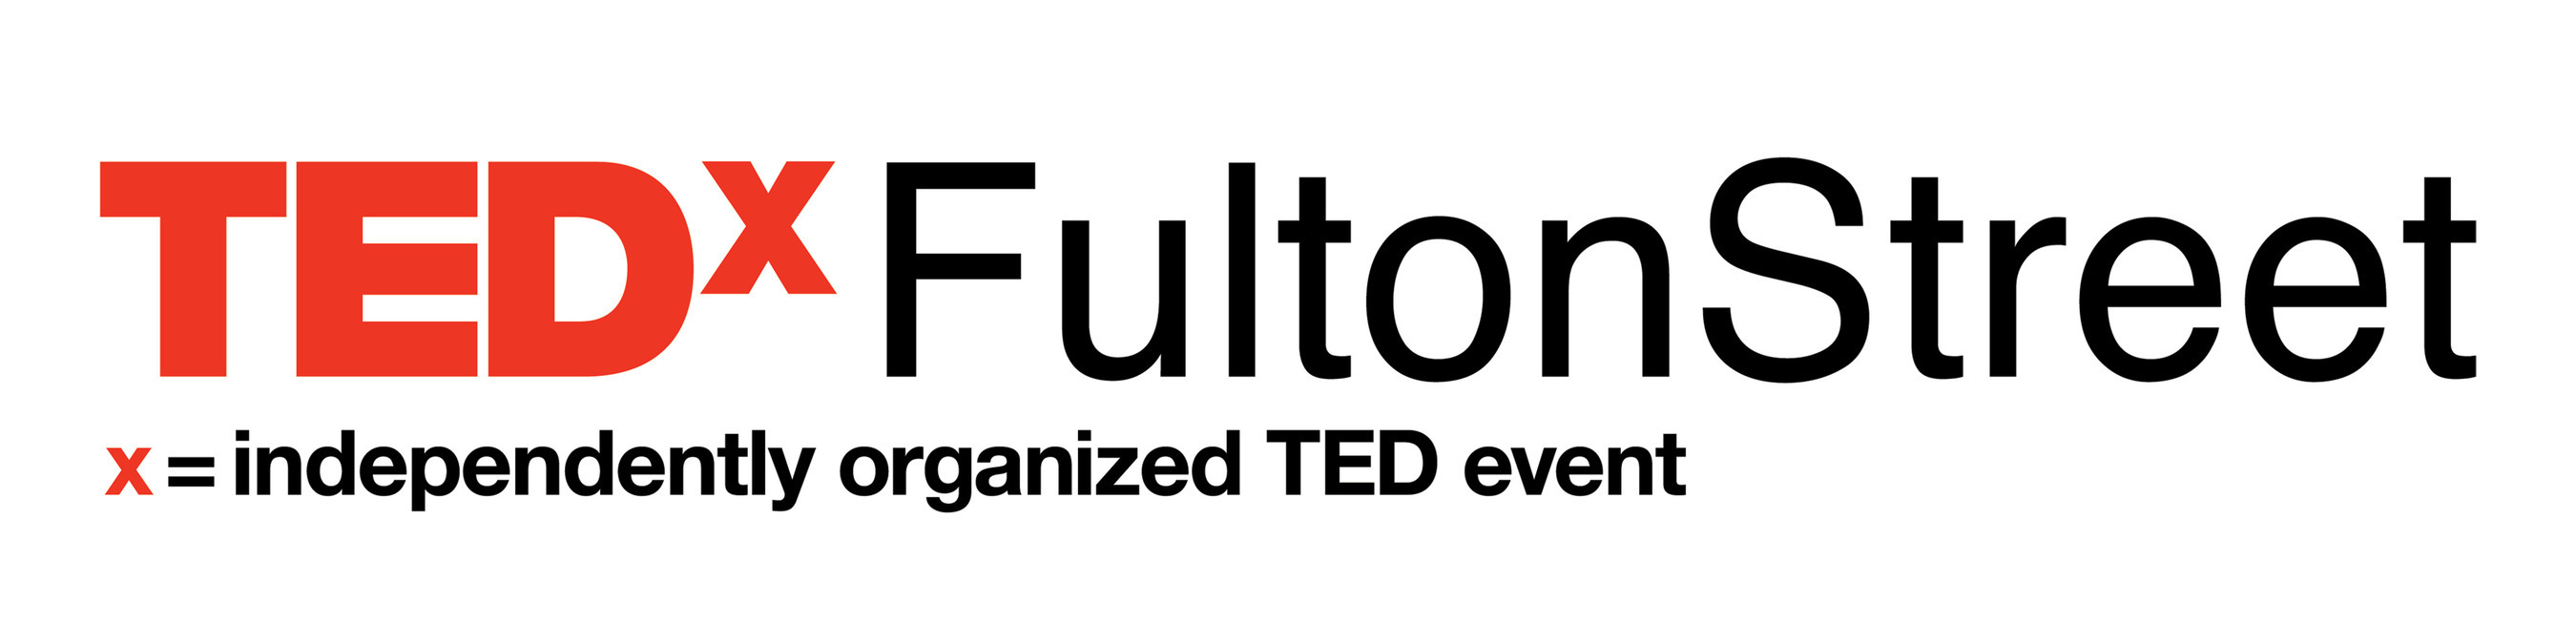 Calling All Creatives, Thinkers and Doers: Tickets Now Available for Second-Annual TEDxFultonStreet